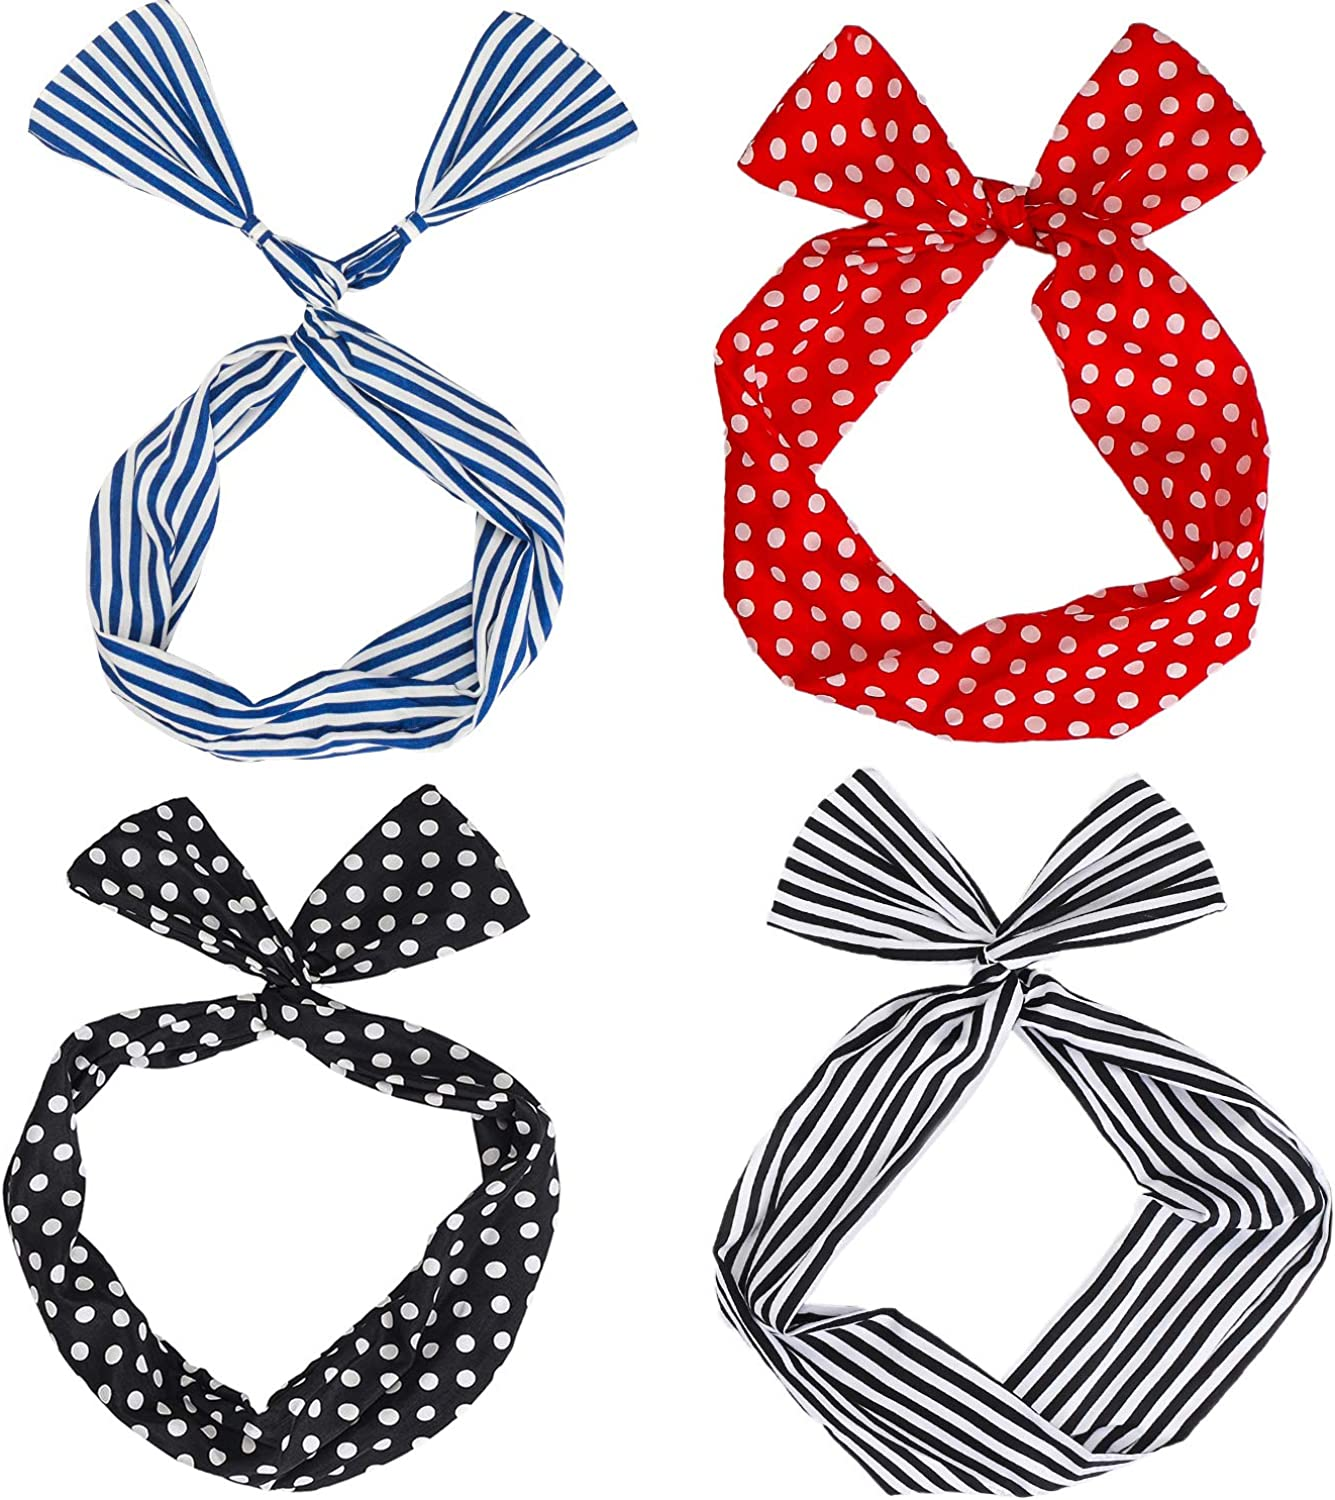 Beelittle 50s Elastic Headbands Retro Style Boho Floal Polka Dot Bowknot Headwraps Twisted Hair Band Fashion Head Accessorie for Women and Girls Style 1